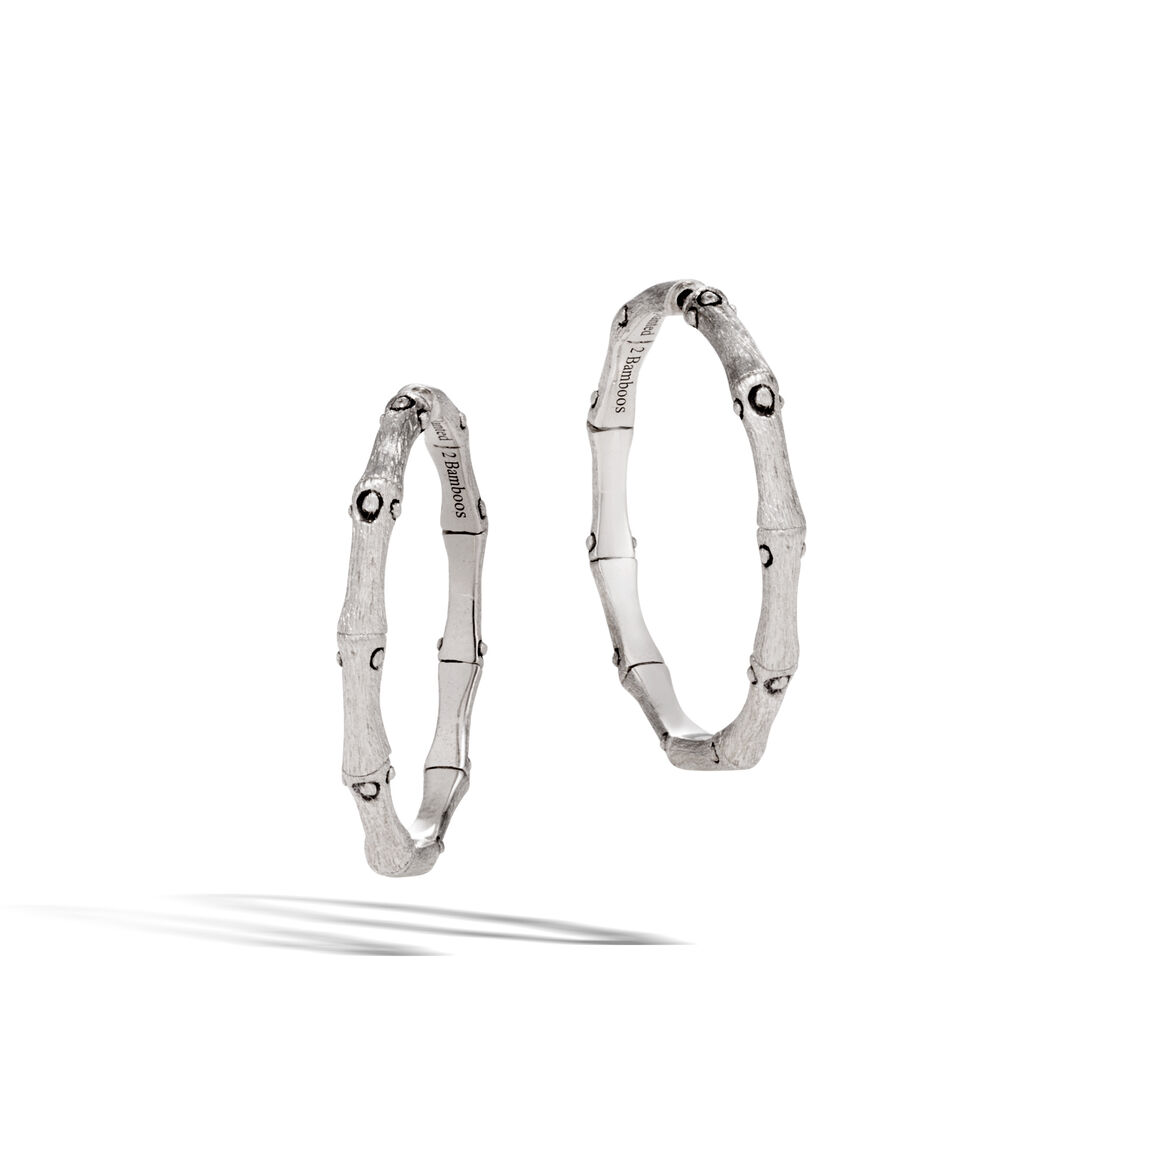 Bamboo Medium Hoop Earring in Brushed Silver